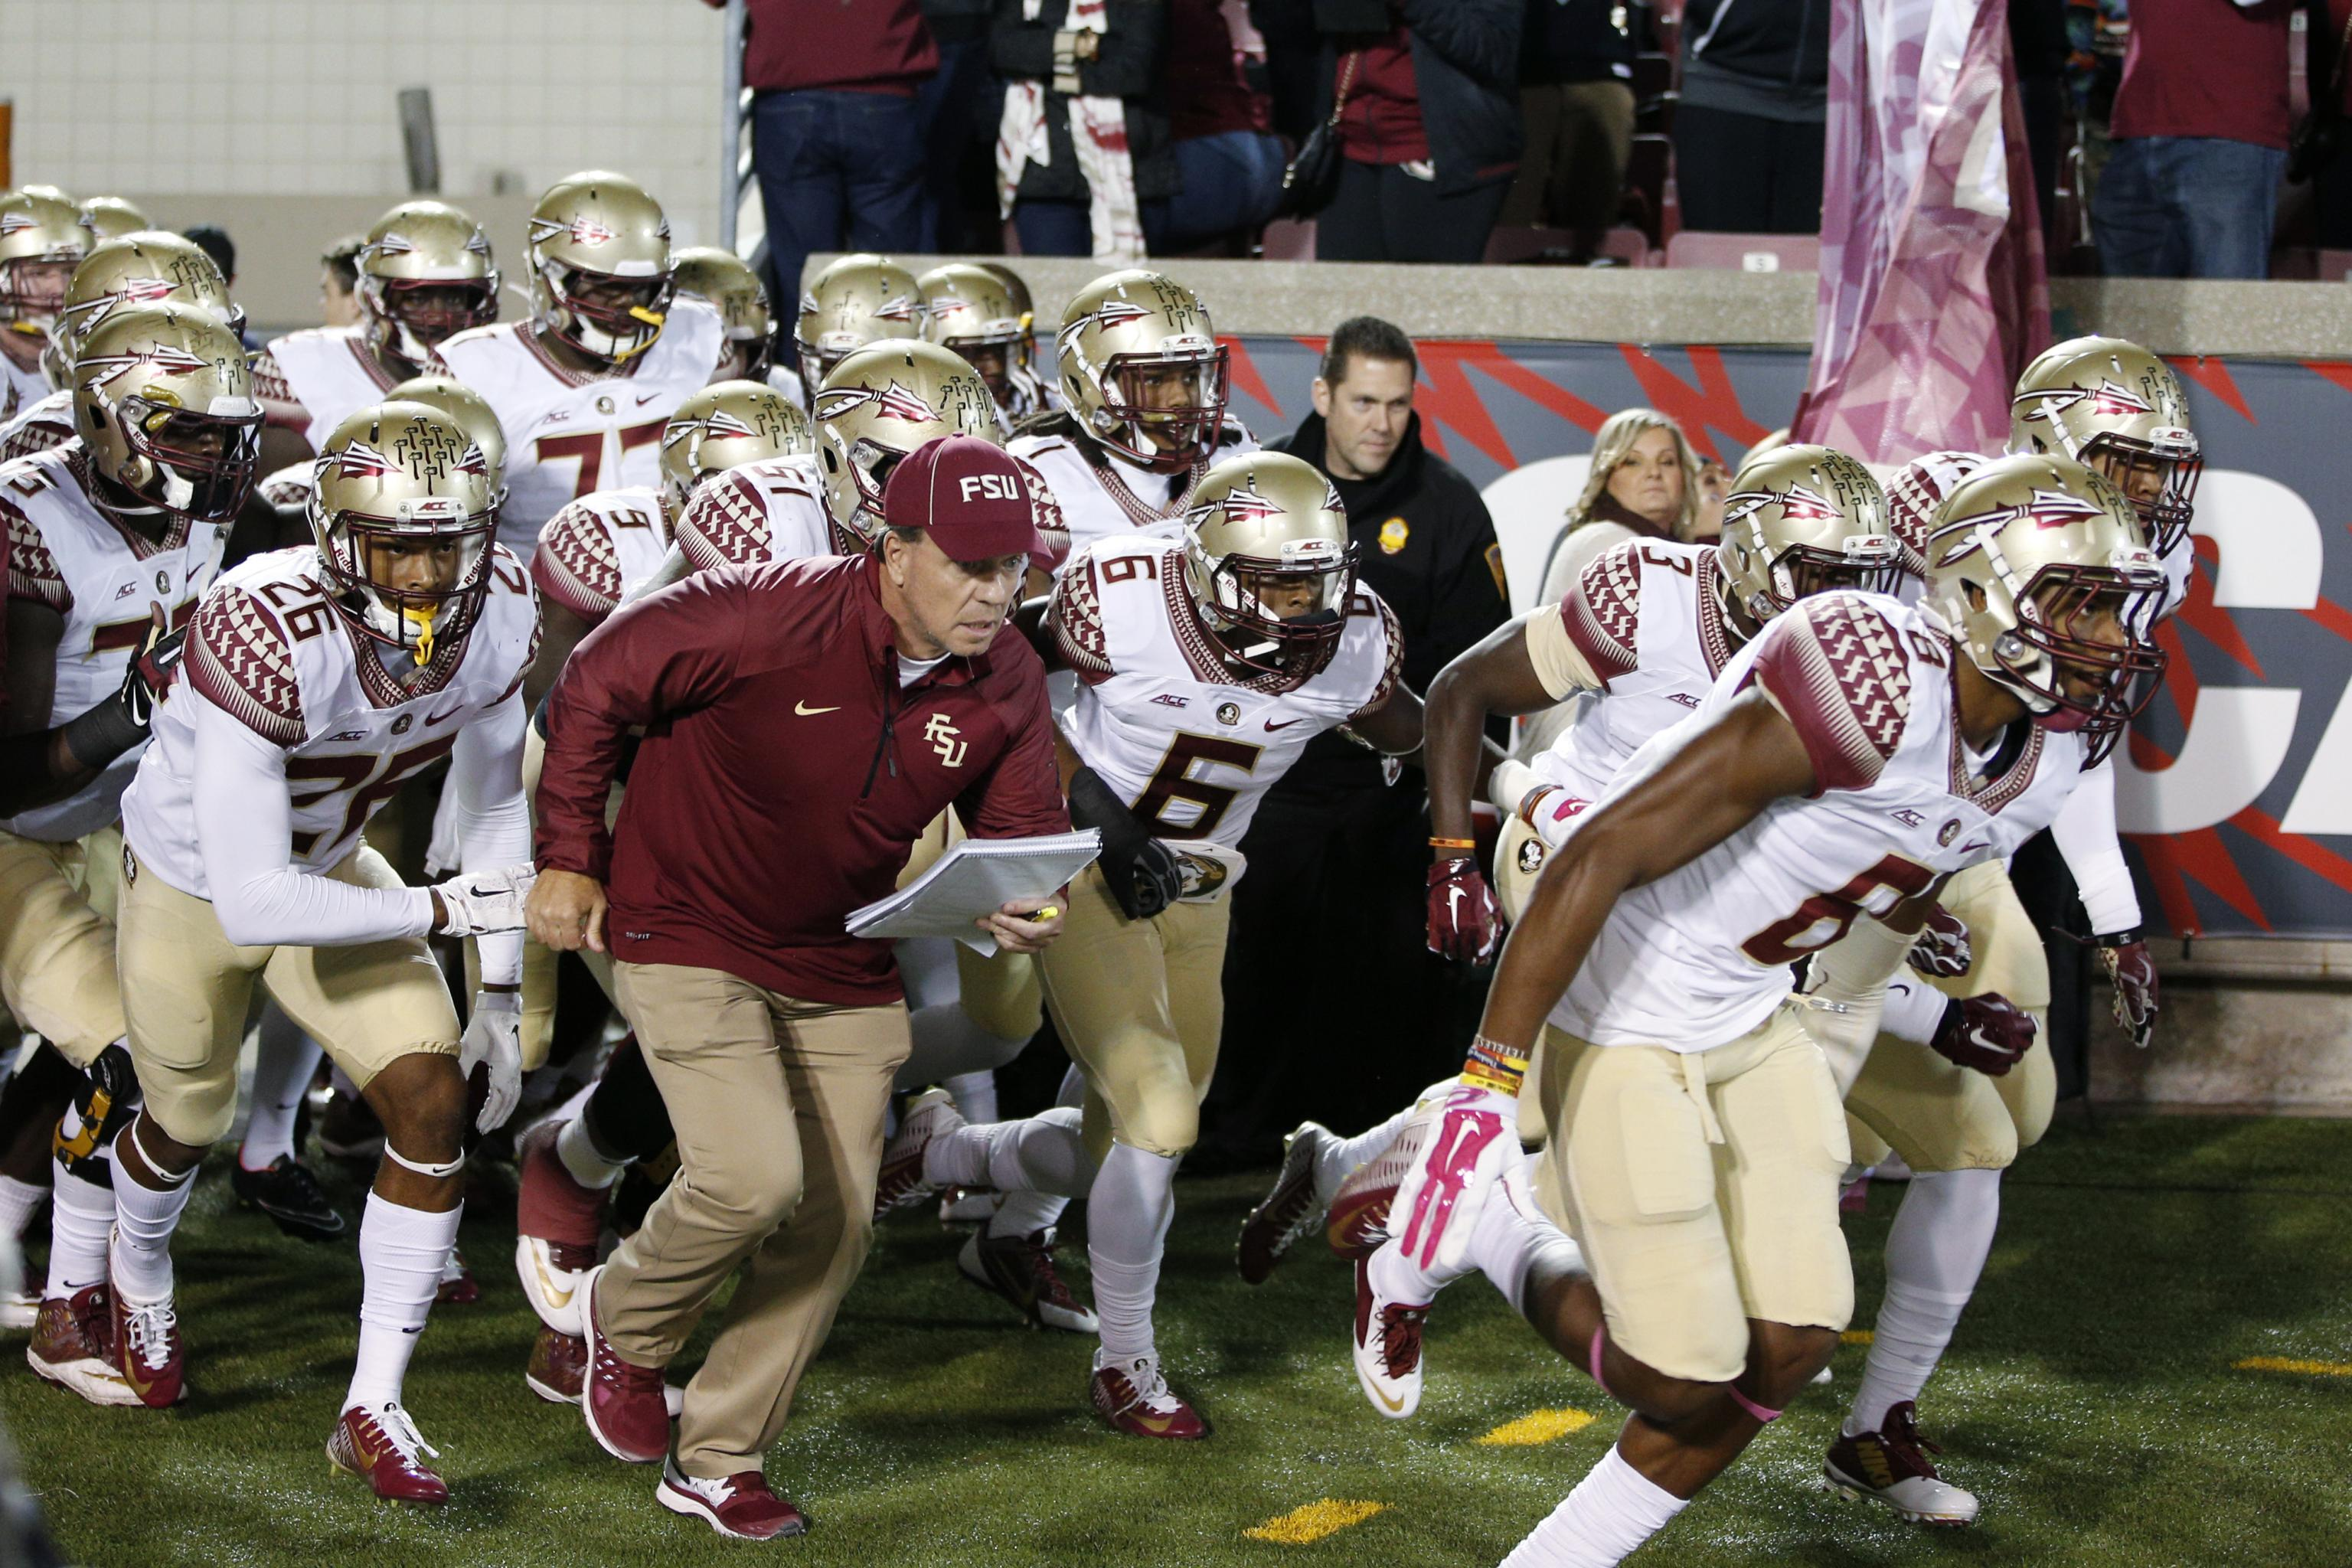 Fsu Football Depth Chart Analysis Complete 2015 Preview And Predictions Bleacher Report Latest News Videos And Highlights